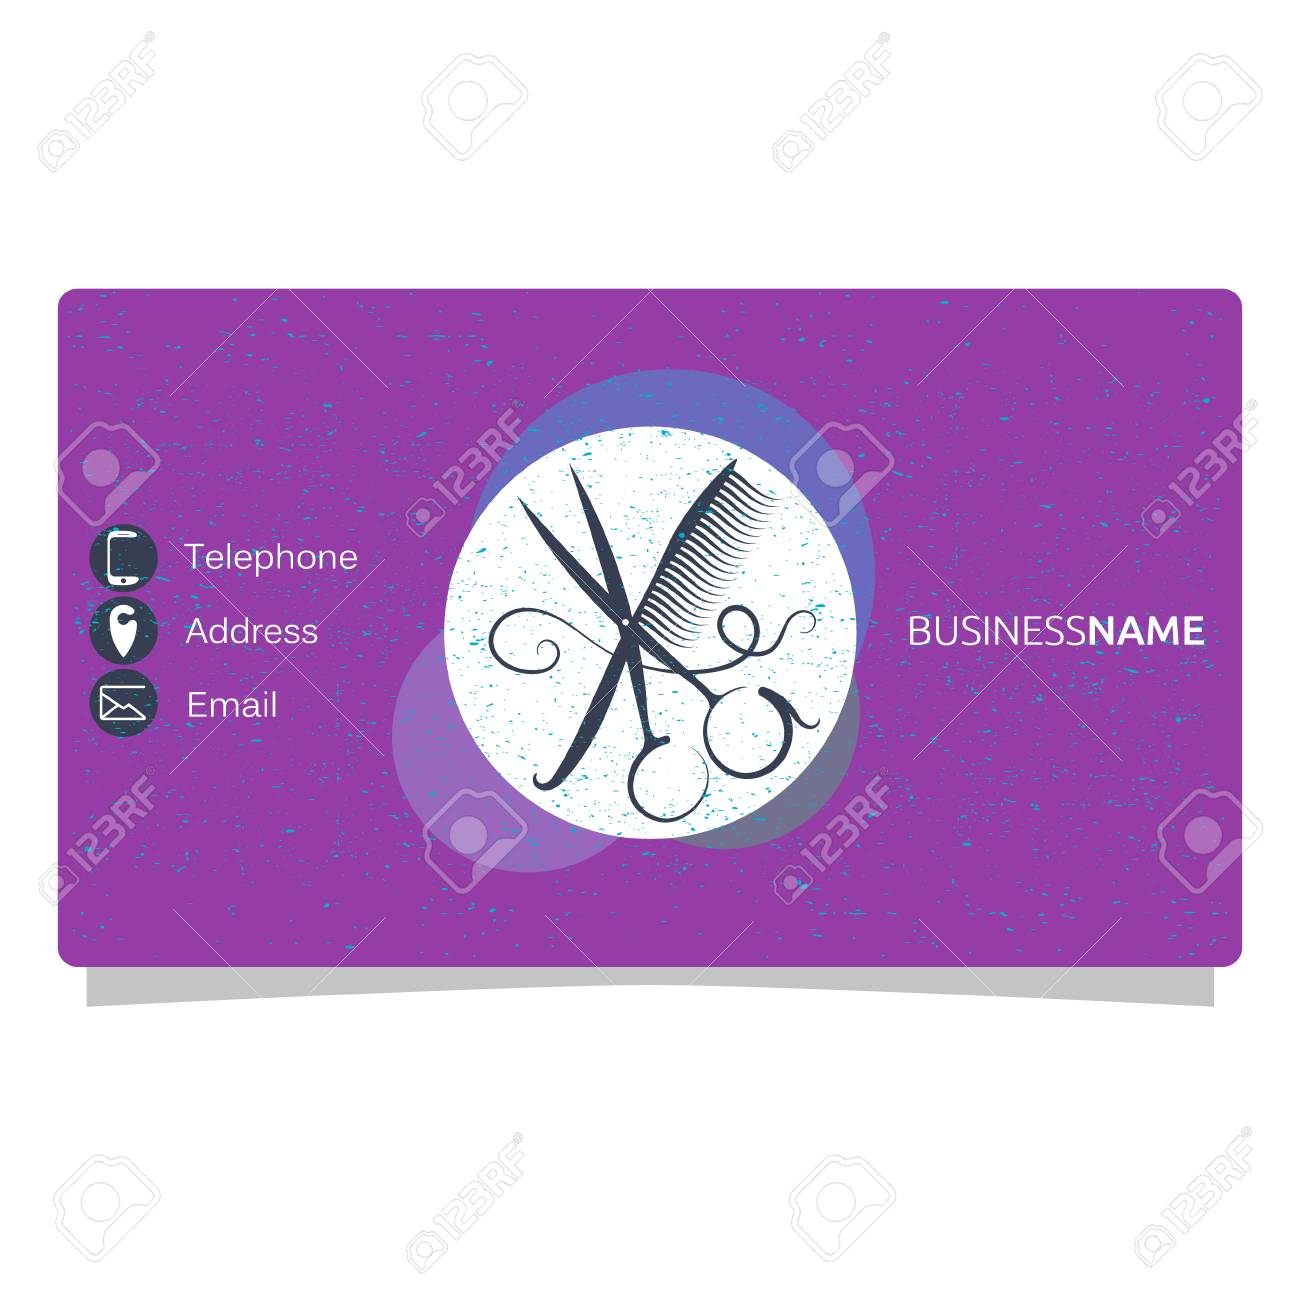 Beauty Salon Business Card, Comb And Scissors Royalty Free ...